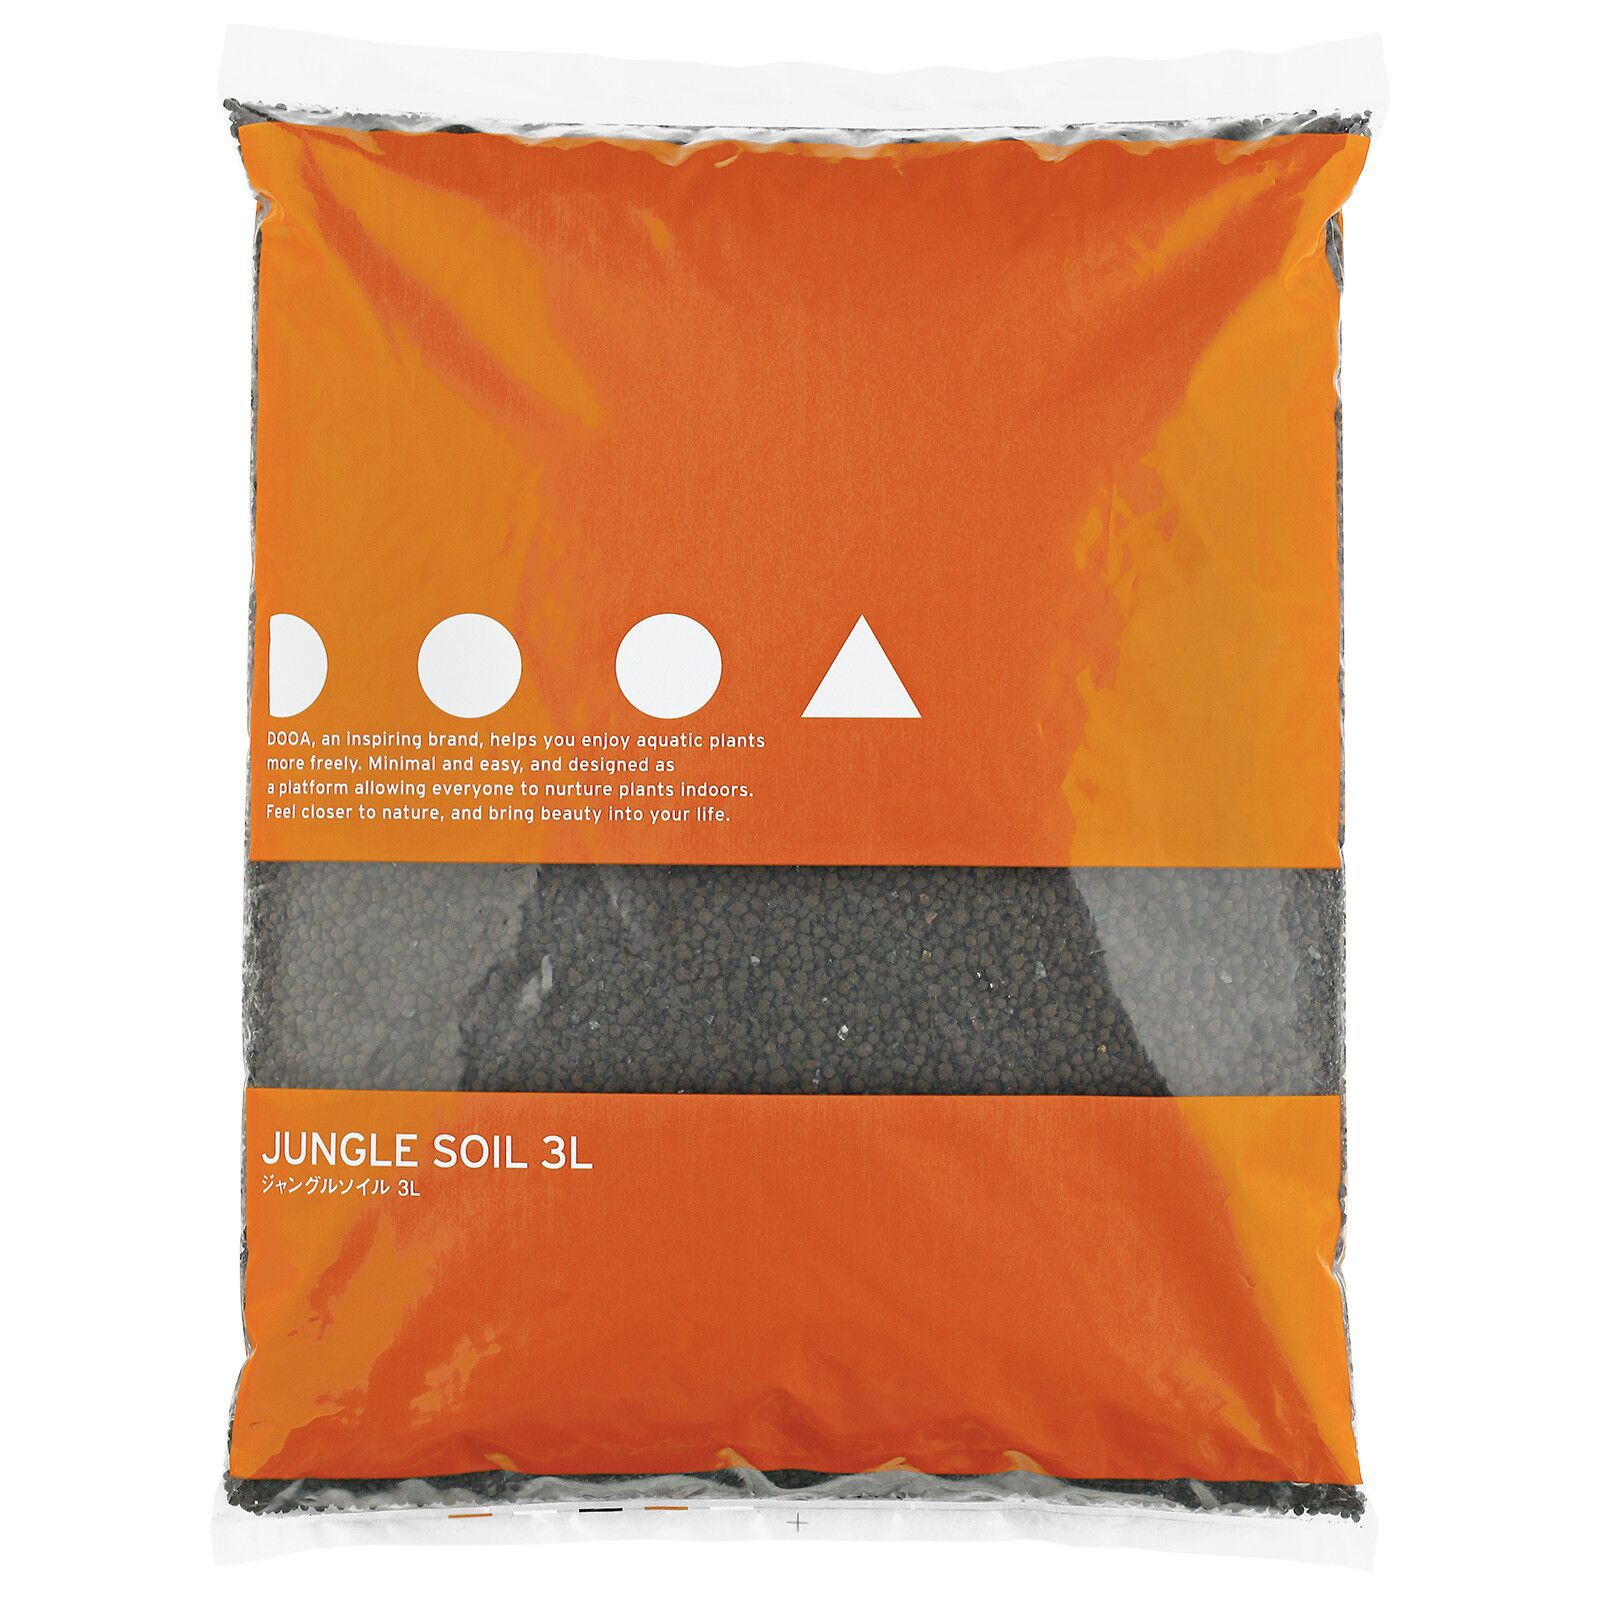 DOOA - Jungle Soil